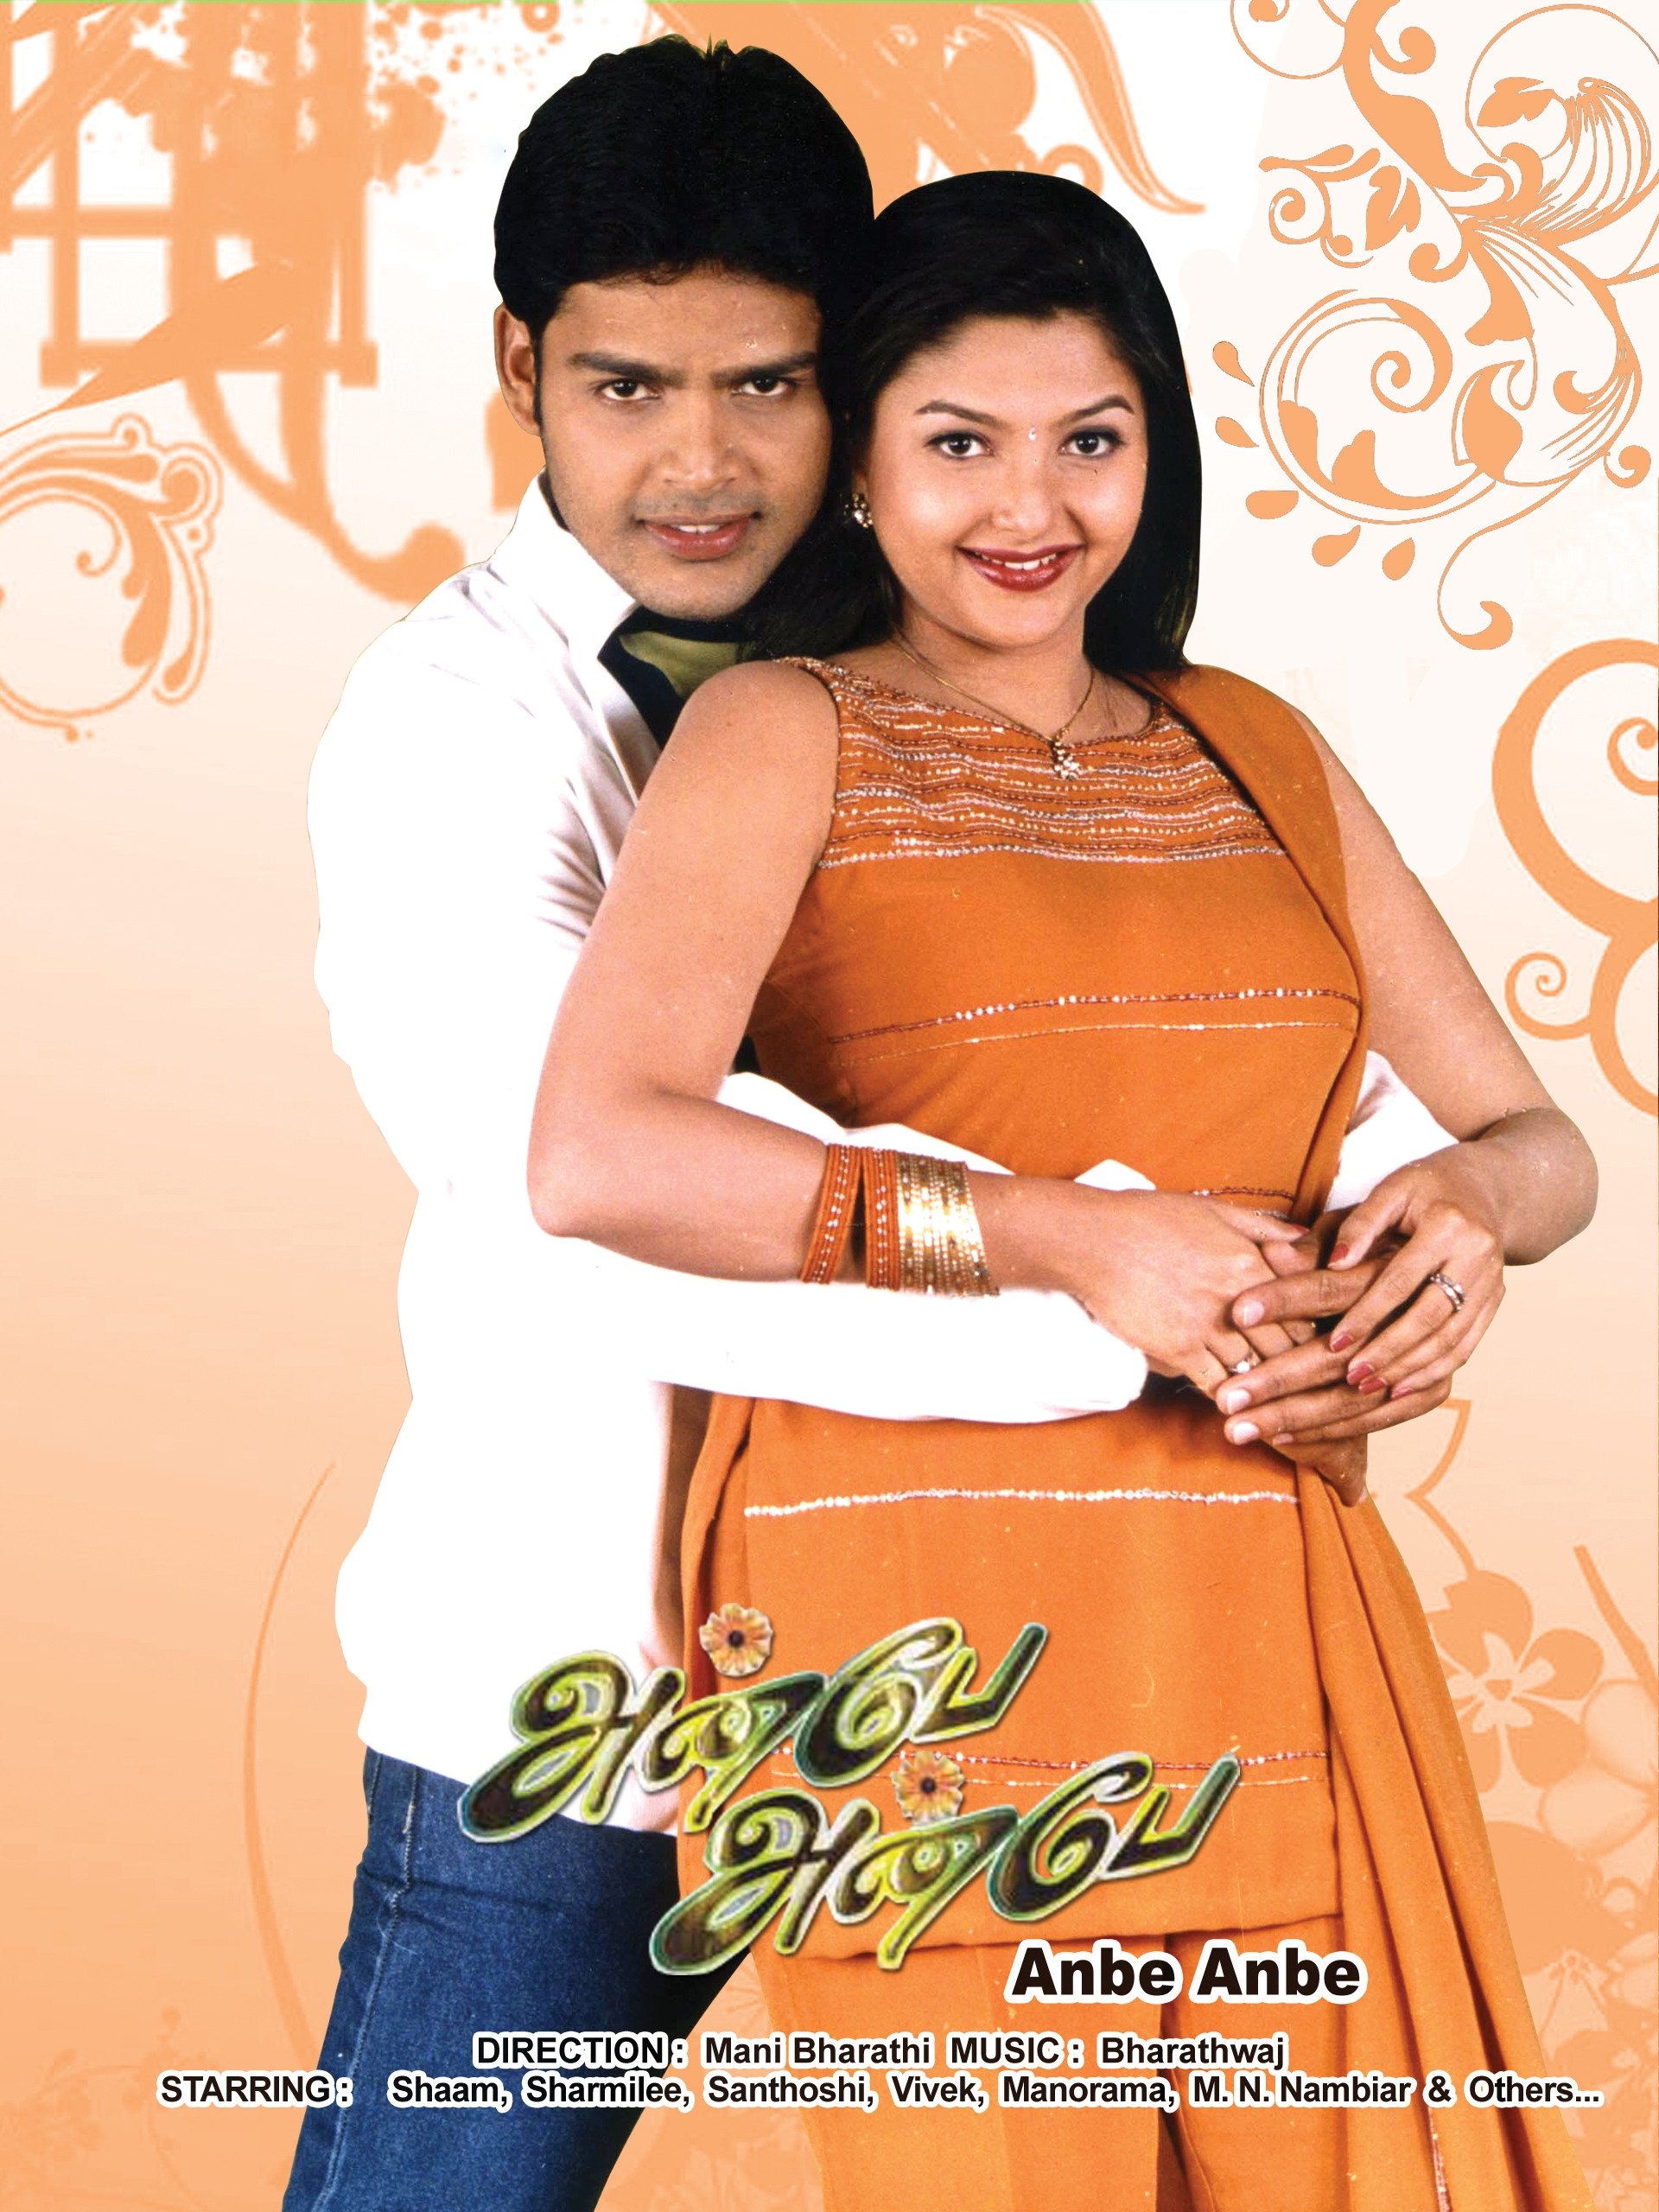 Anbe Anbe (2003)